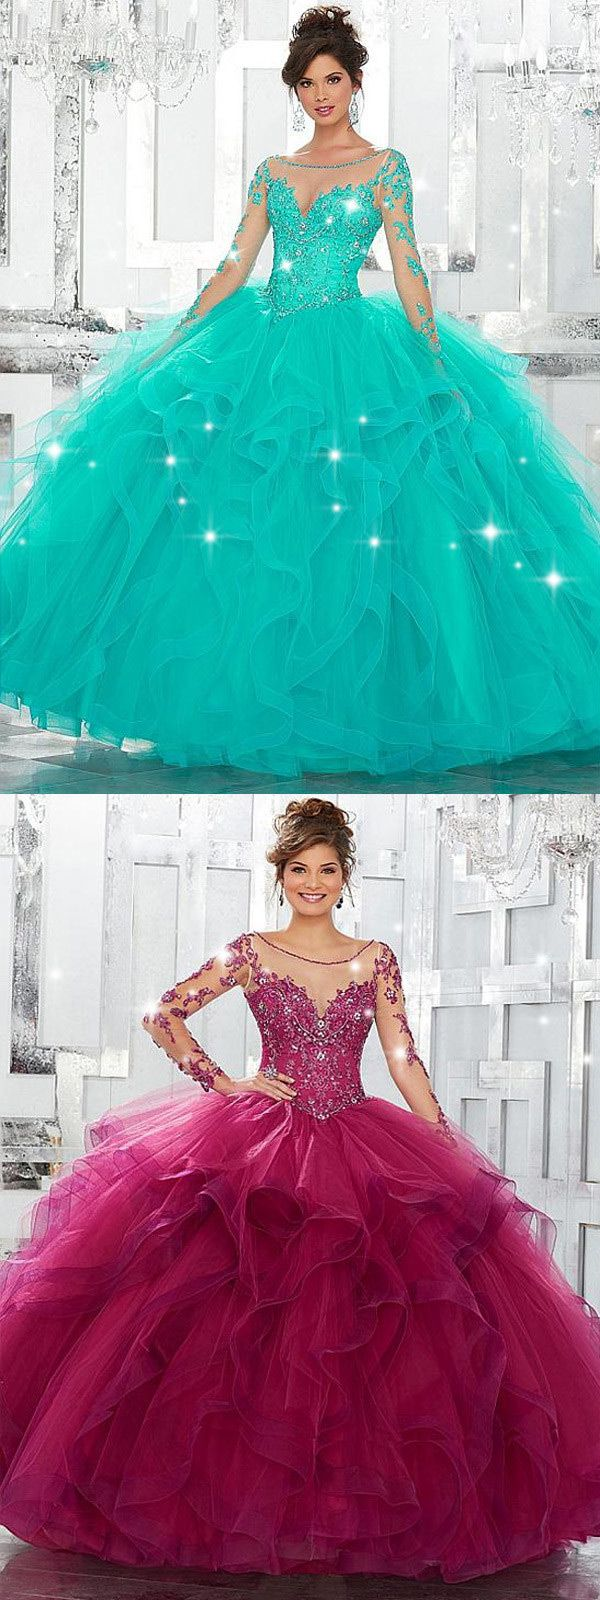 Glamorous Tulle Bateau Neckline Ball Gown Quinceanera Dresses With Lace Appliques & Beadings